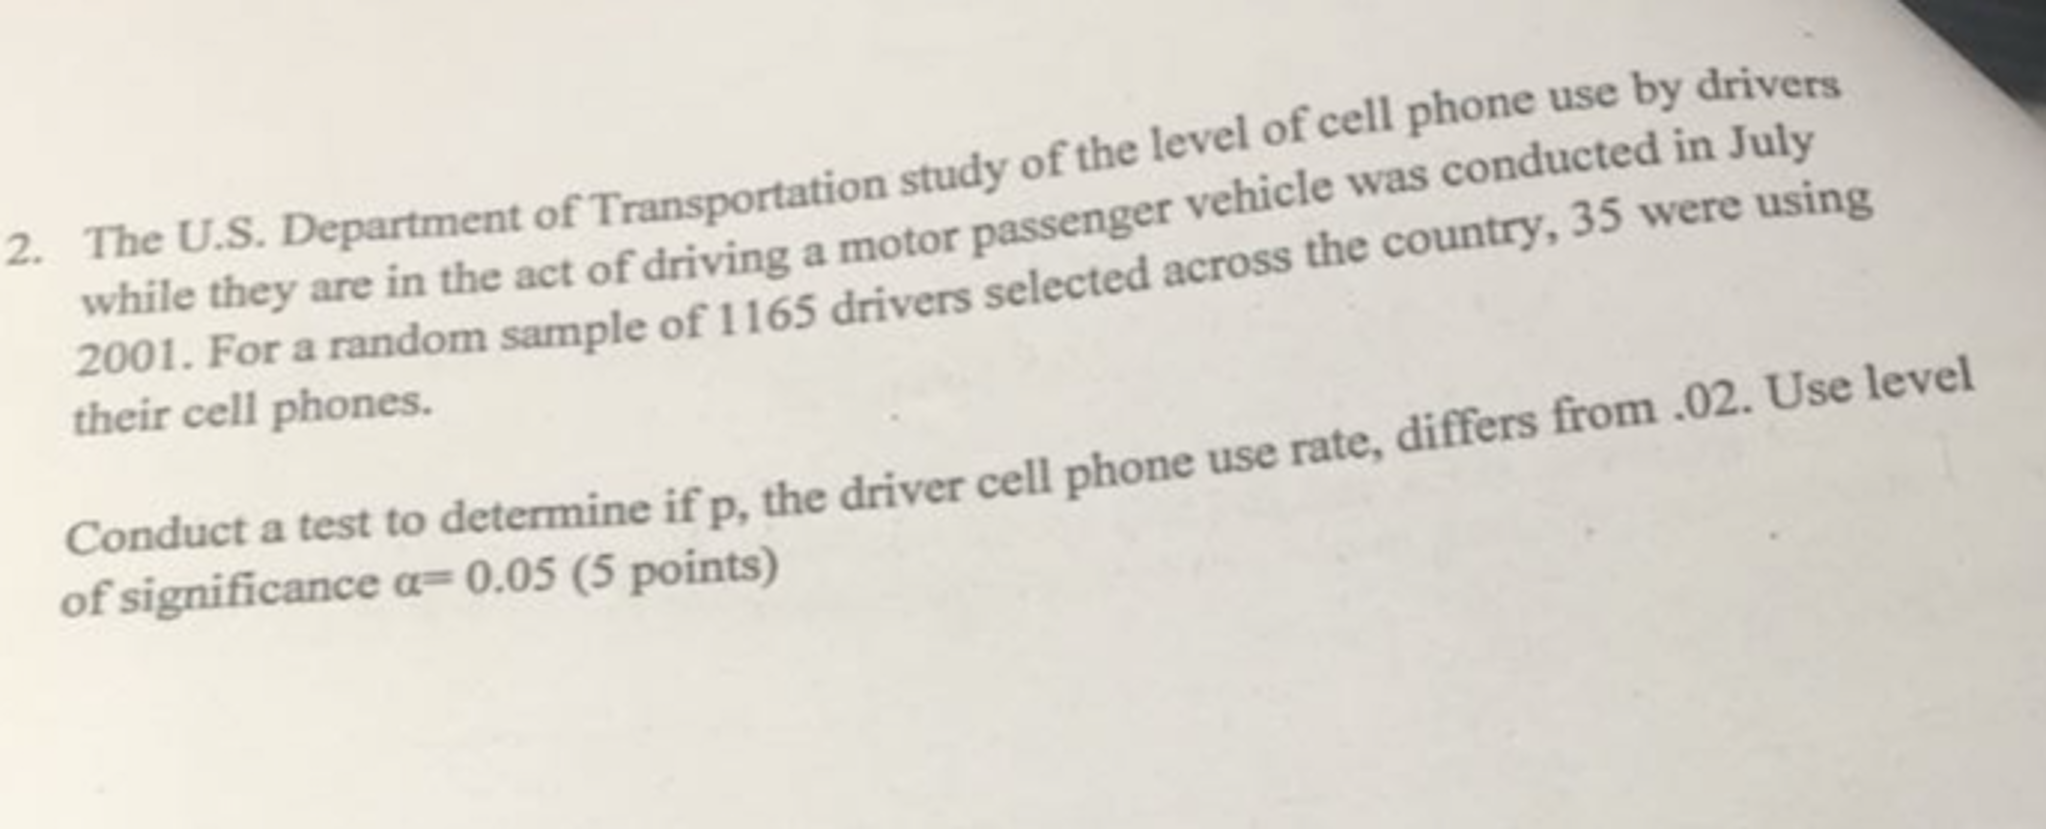 research paper cell phone use while driving